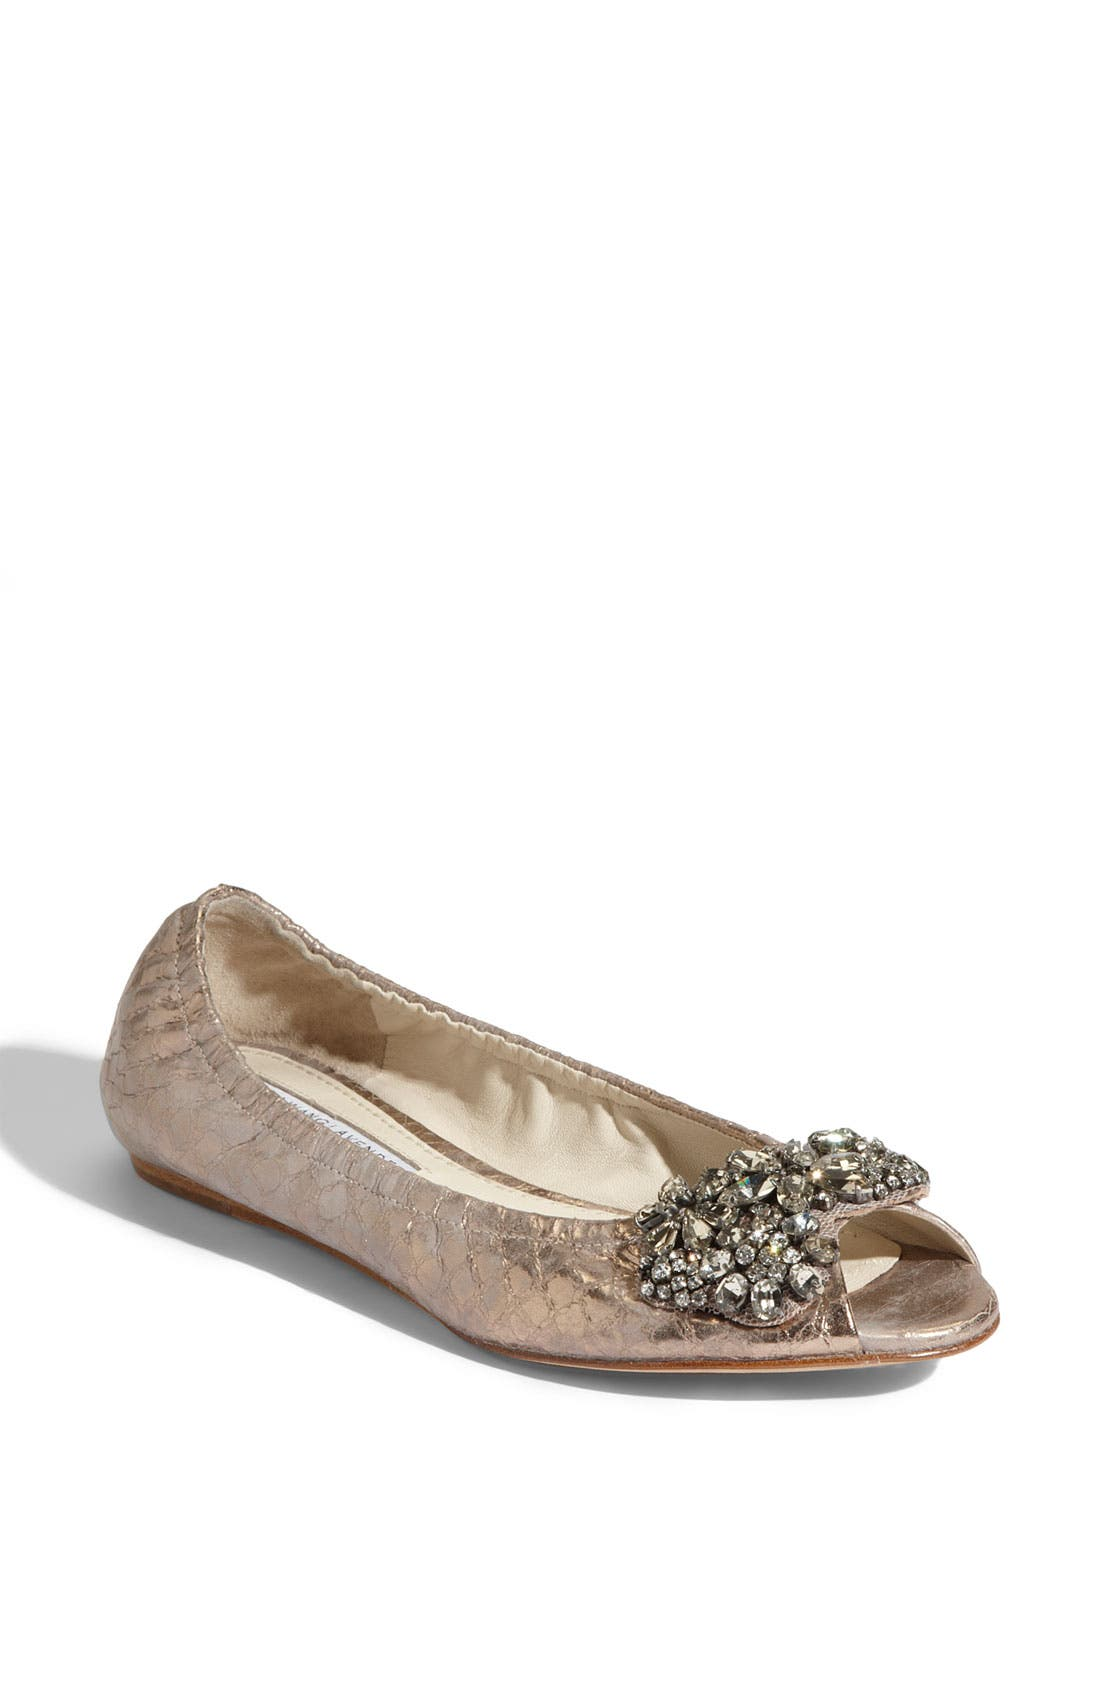 Alternate Image 1 Selected - Vera Wang Lavender 'Luna' Snake Embossed Metallic Leather Flat